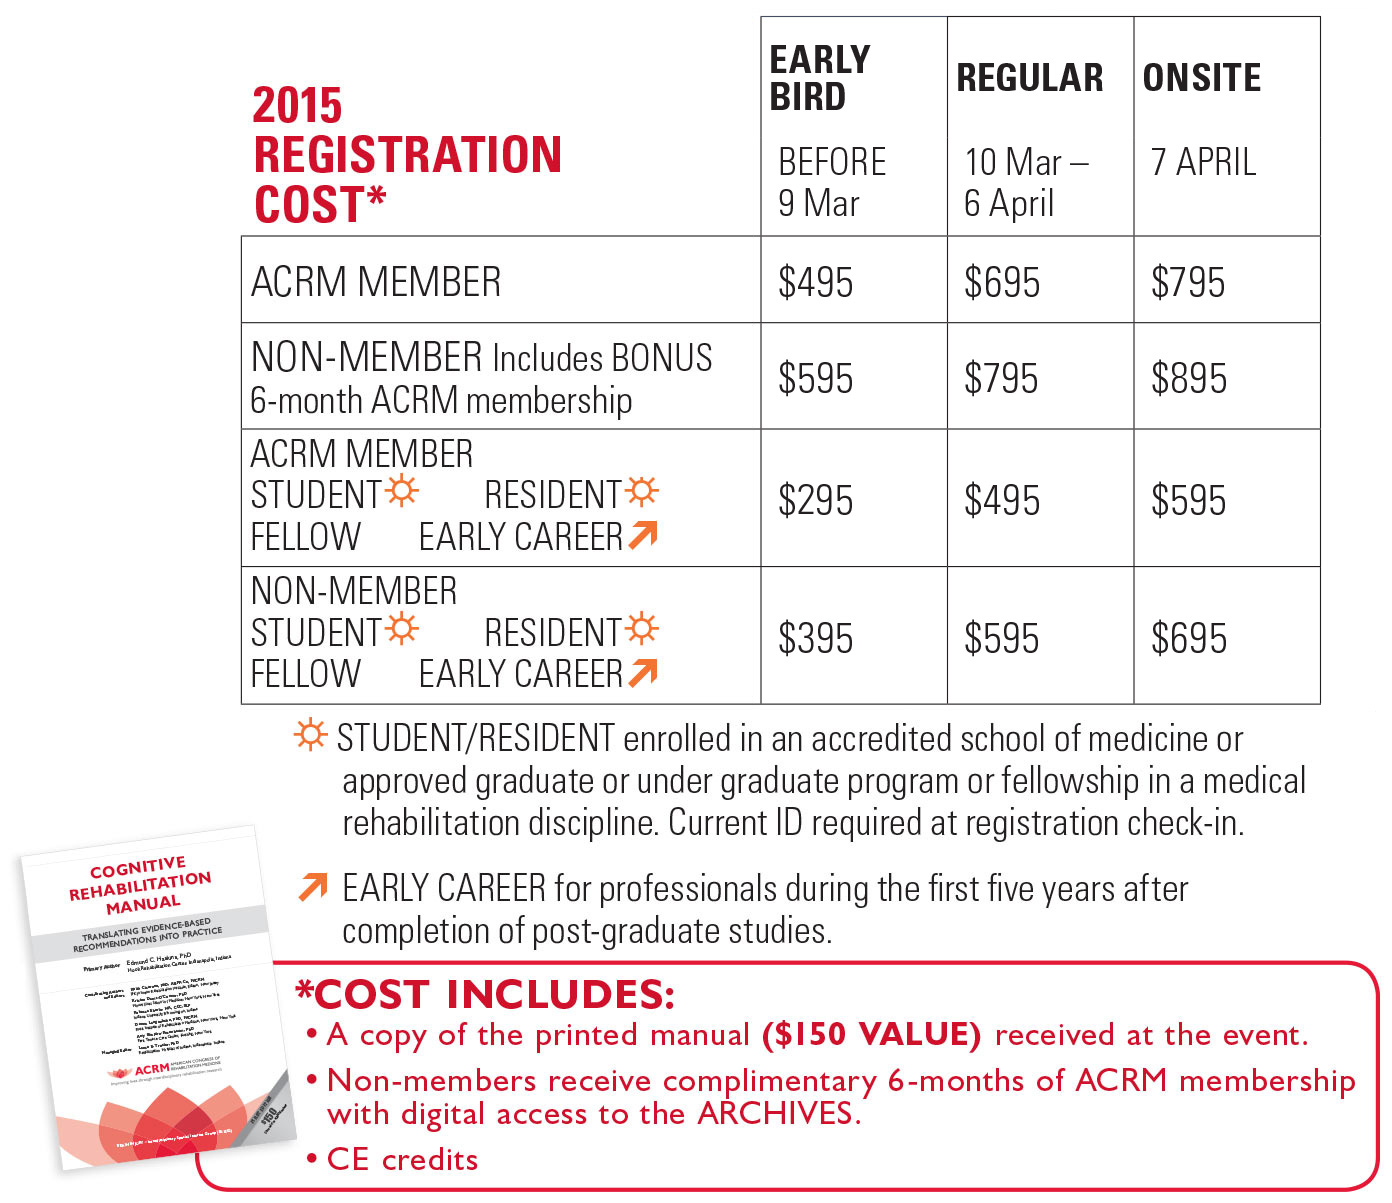 Pricing Grid: Cognitive Rehabilitation Training Pricing Grid